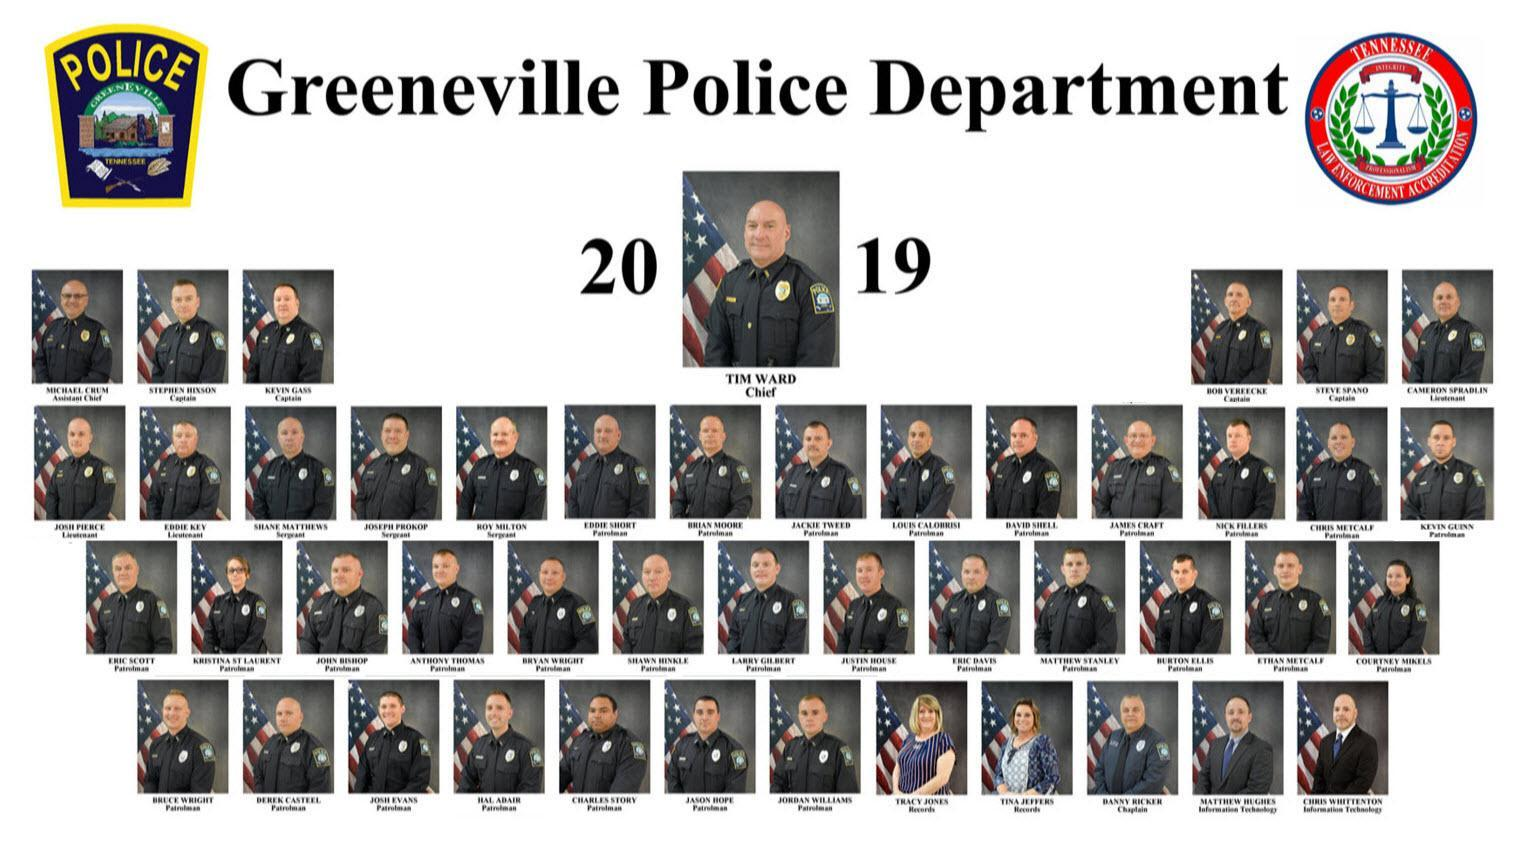 Collage Of All Police Department Employees